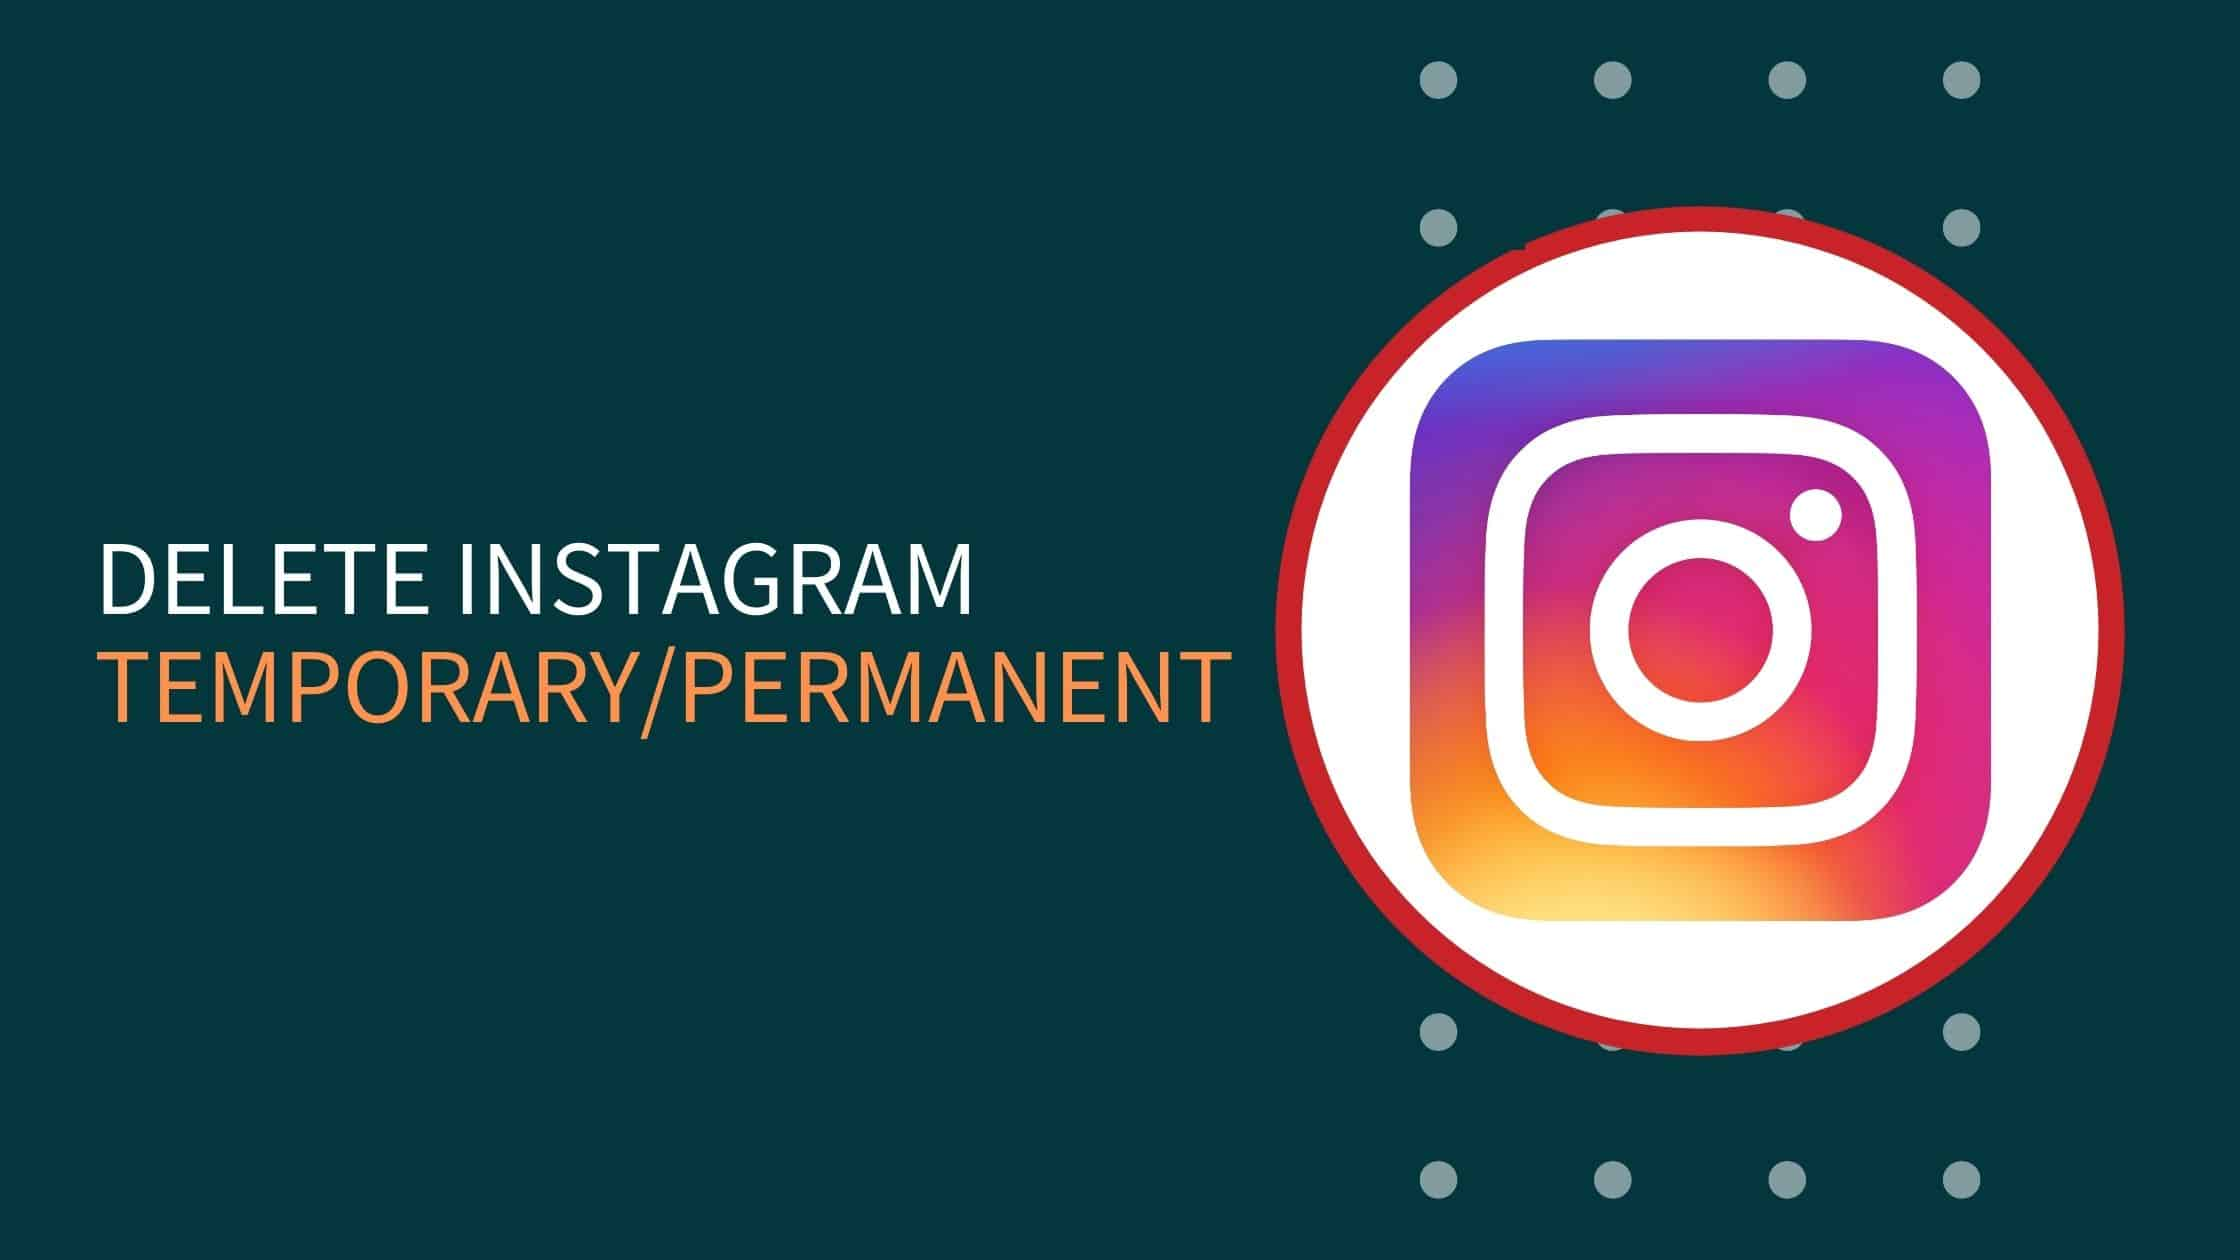 How To Delete Instagram Account Permanently & Temporary?